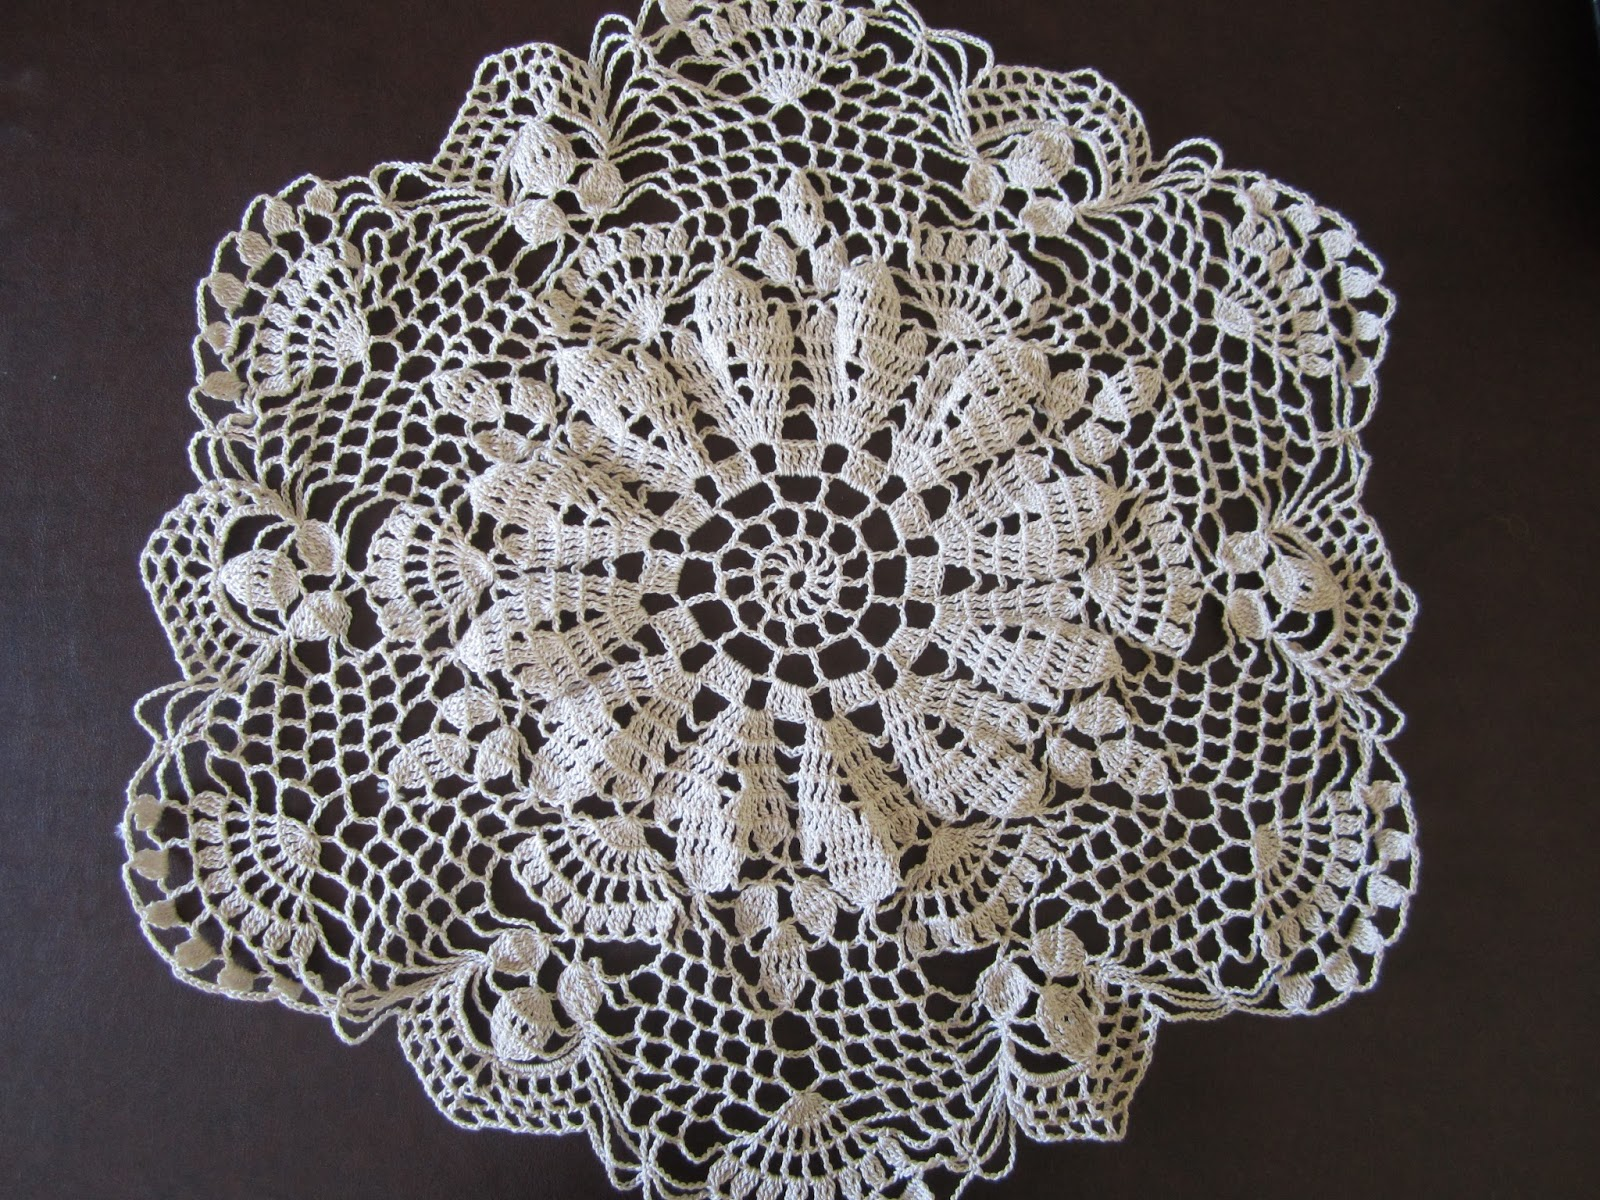 Crocheting Doilies Patterns : Lacy Crochet: My Shortcut to Blocking Doilies and Free Vintage Pattern